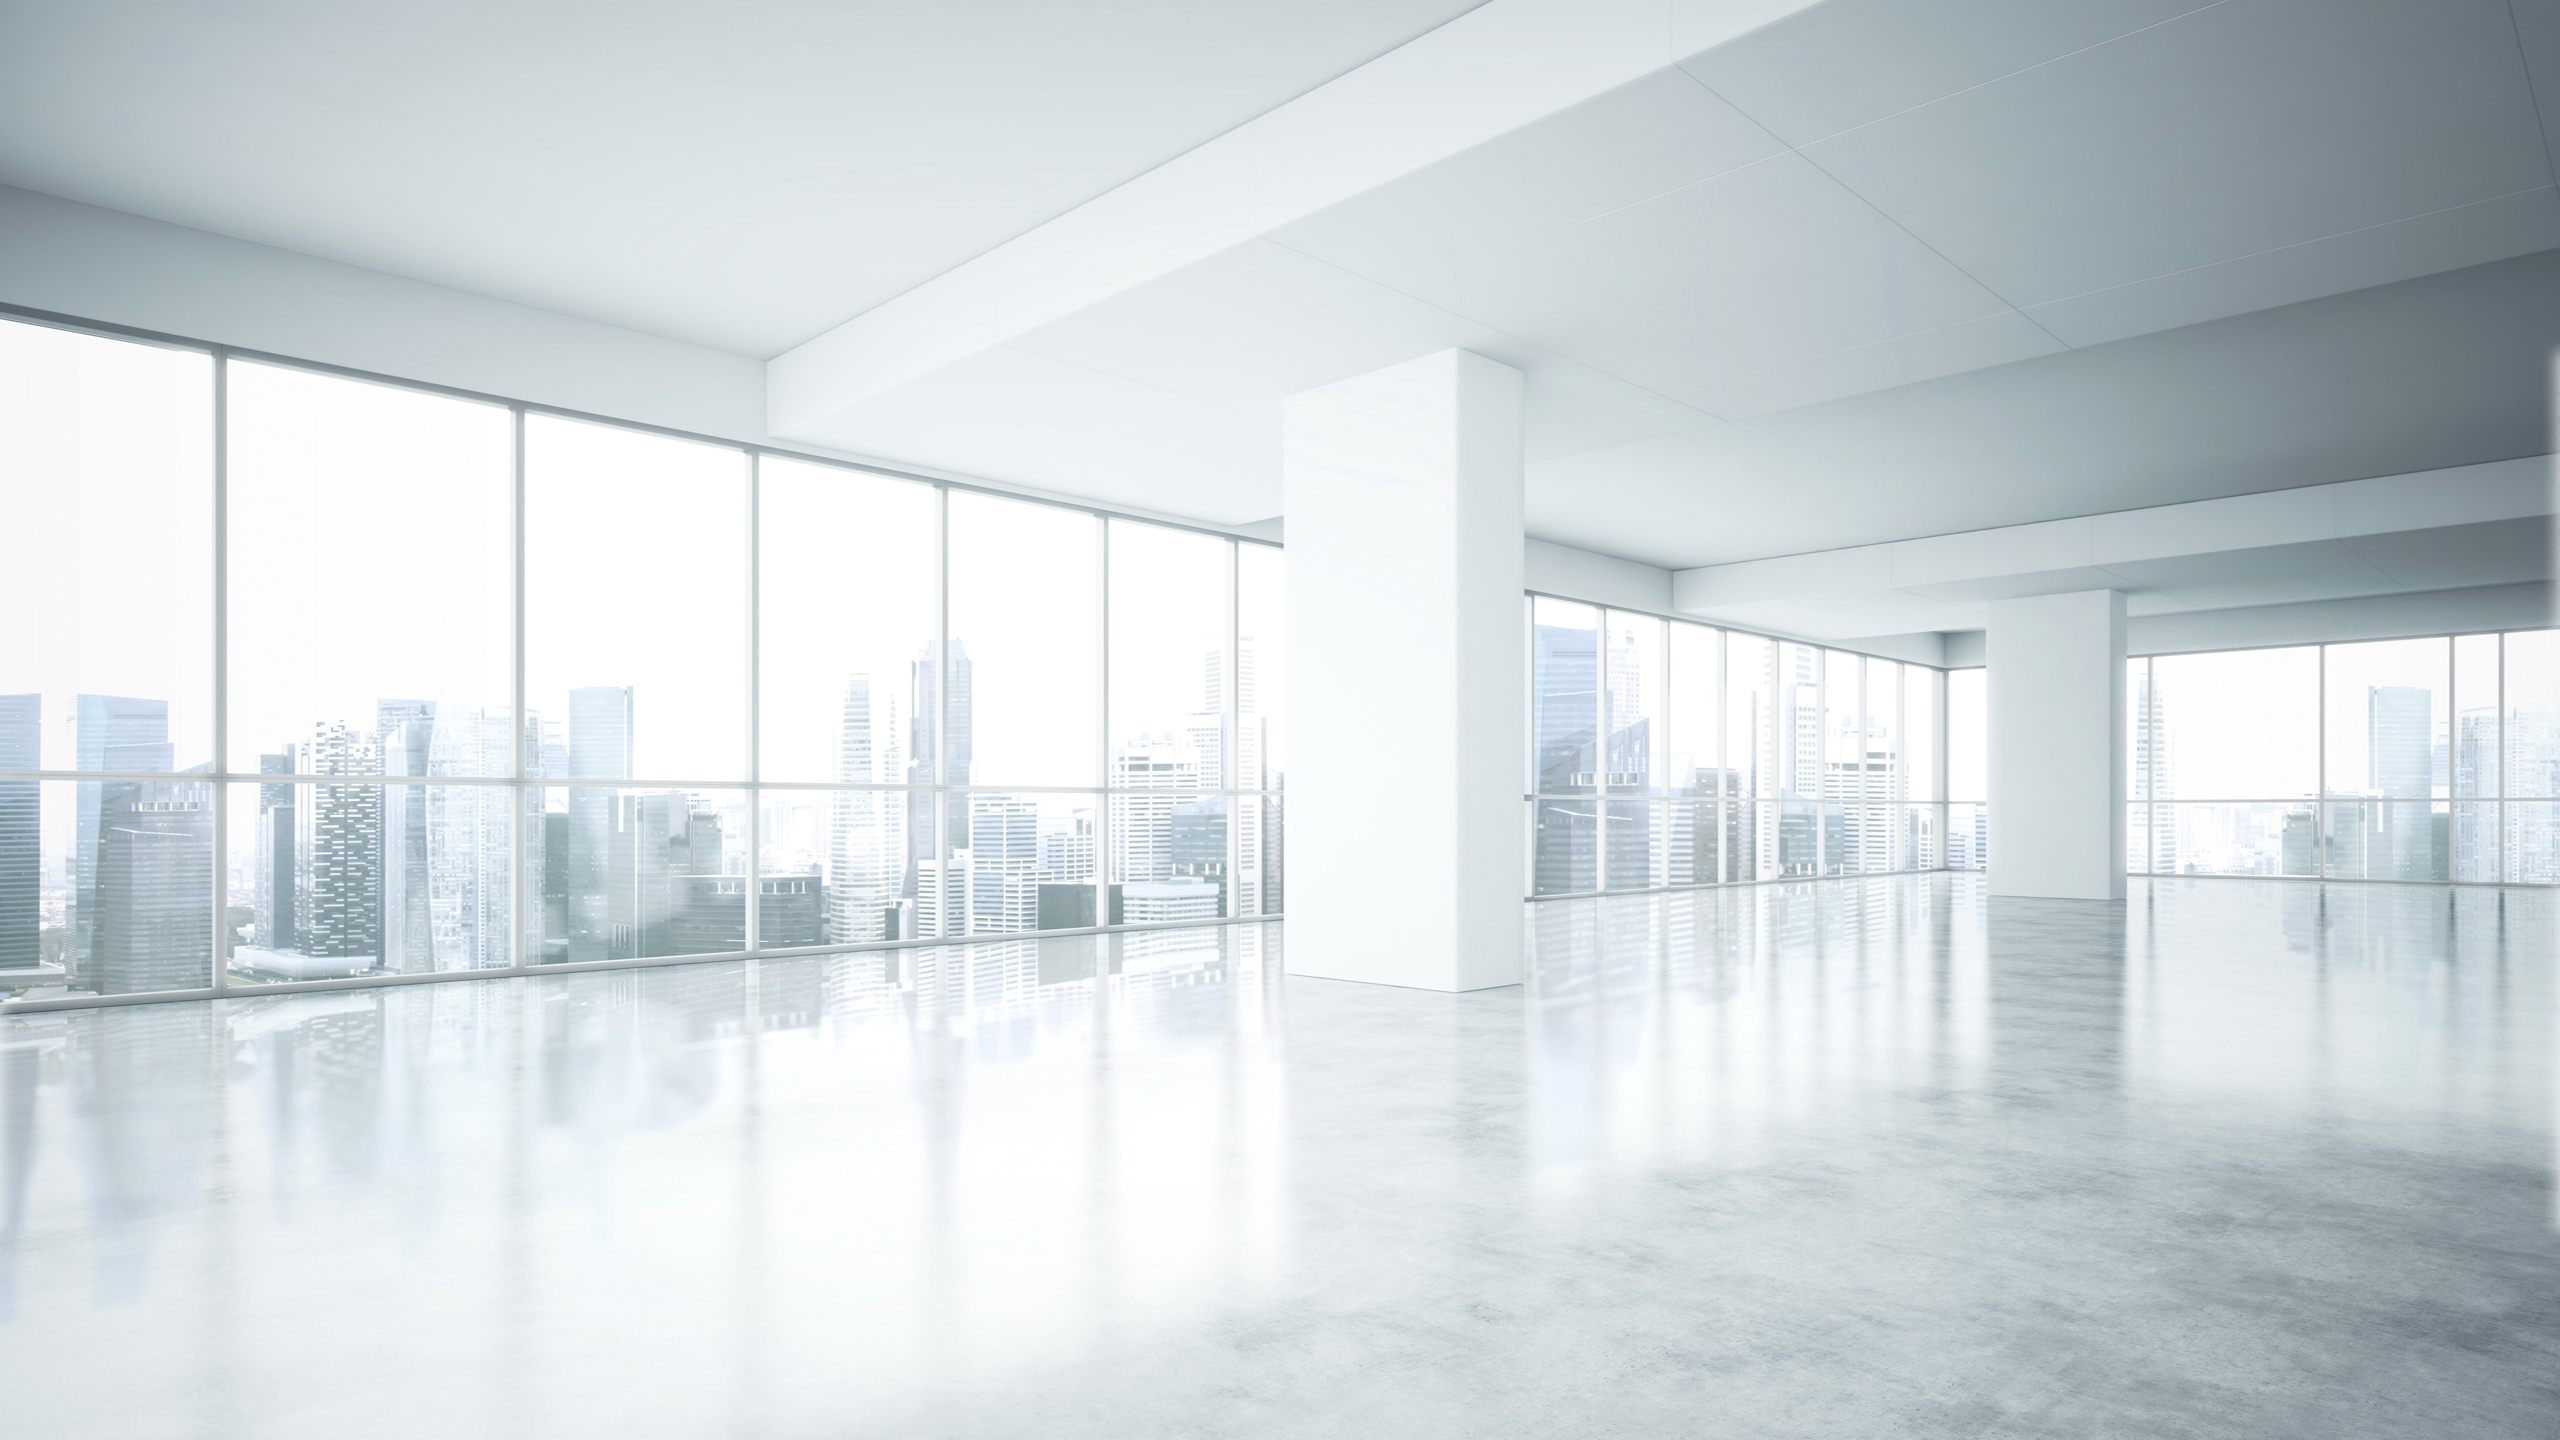 Sensational Empty White Office Interior With City View Campbell Keller Download Free Architecture Designs Scobabritishbridgeorg